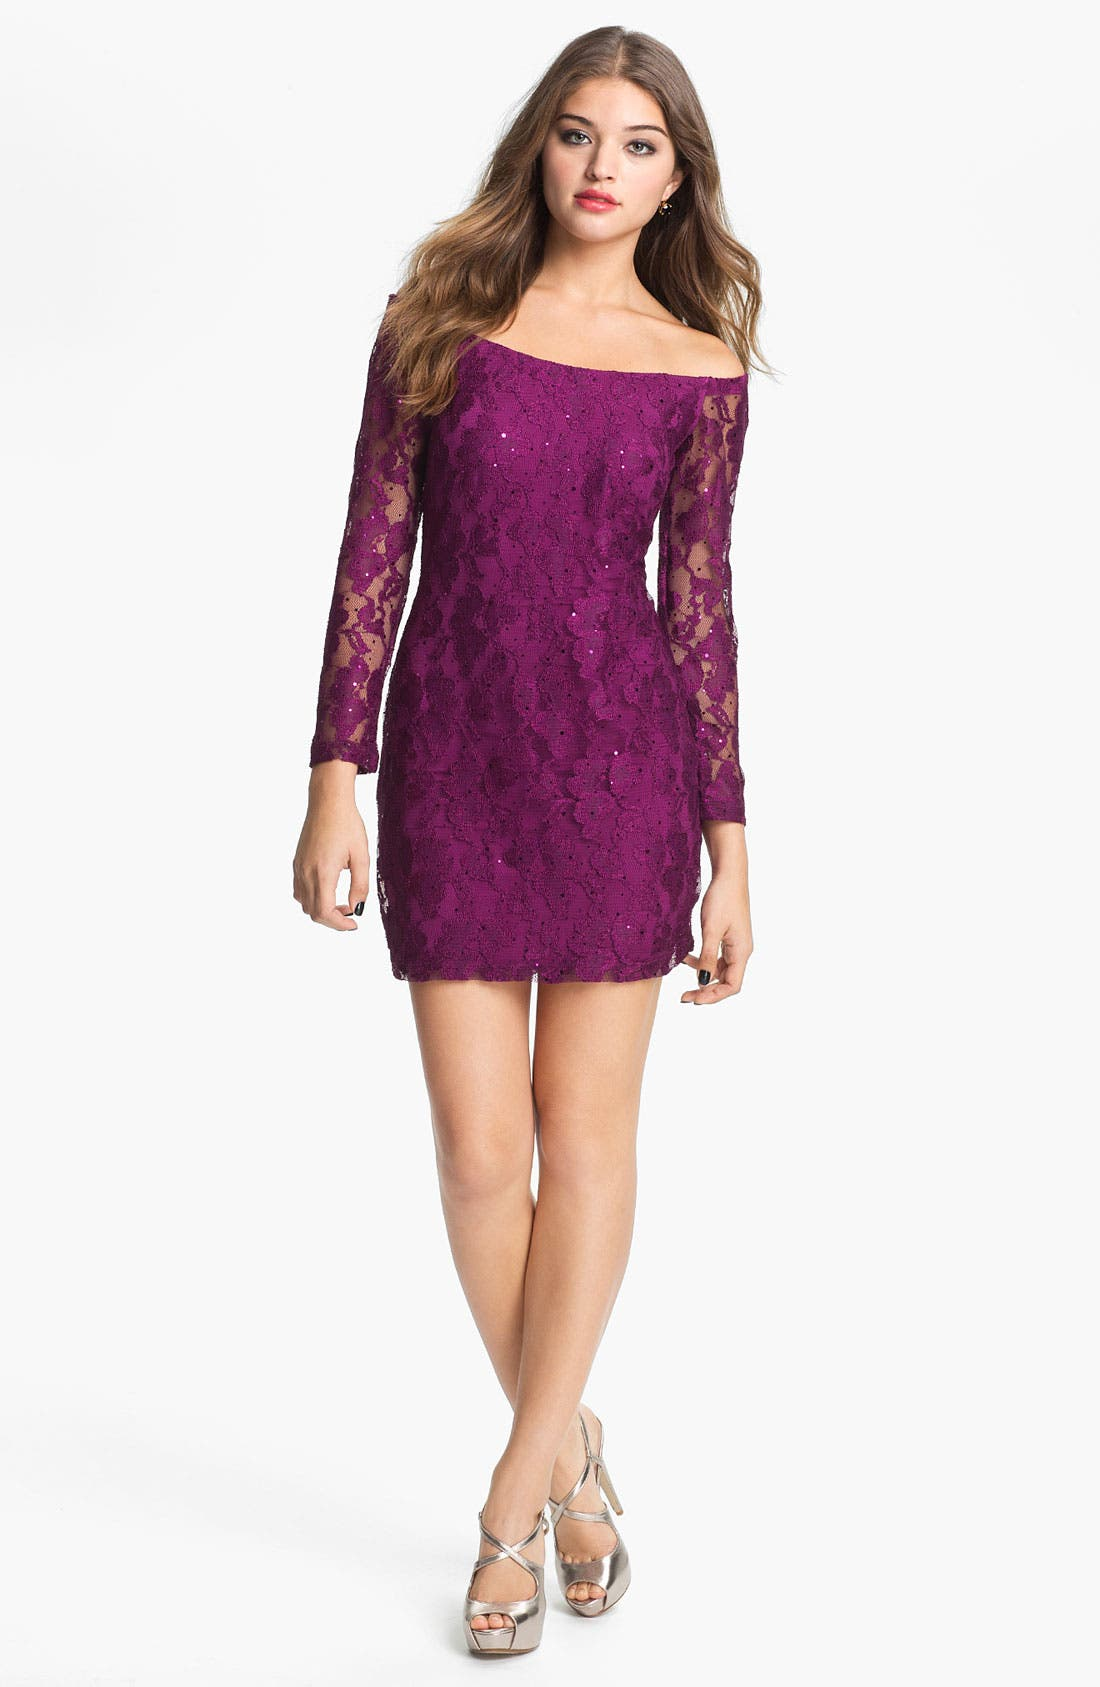 Main Image - Jessica McClintock Sheer Sleeve Sequin Lace Minidress